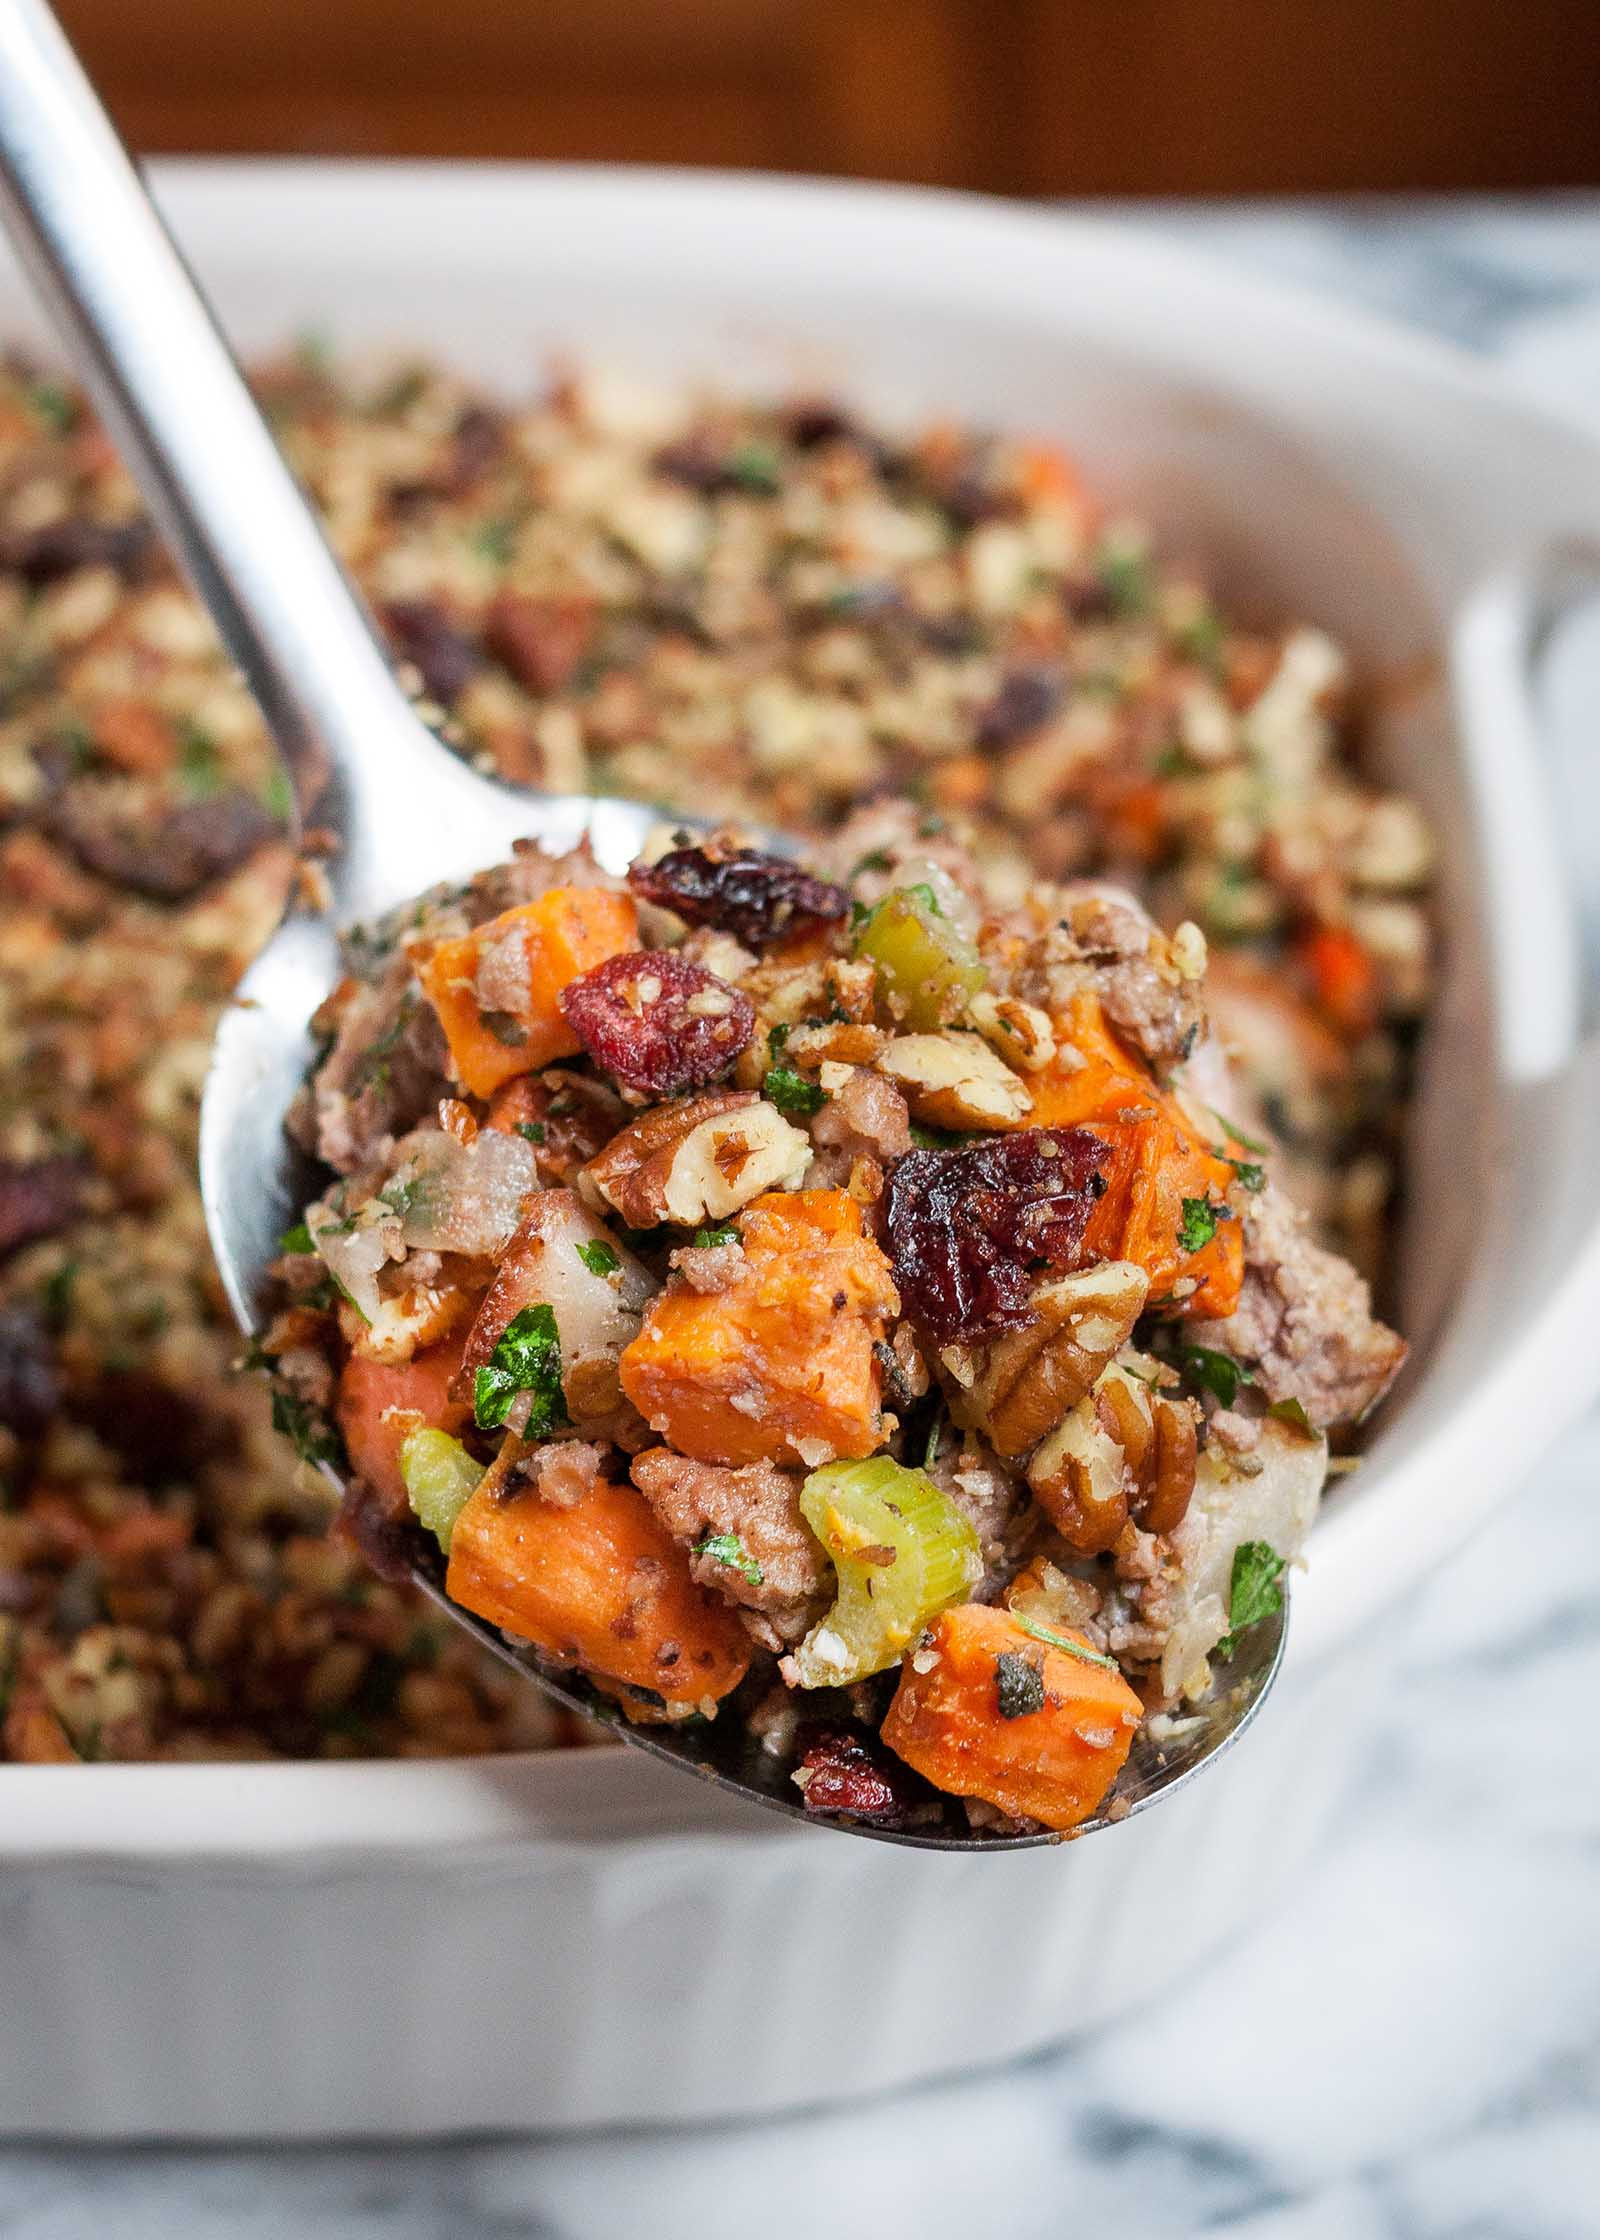 Paleo Thanksgiving Stuffing  Sweet Potato & Pork Thanksgiving Stuffing Paleo Gluten